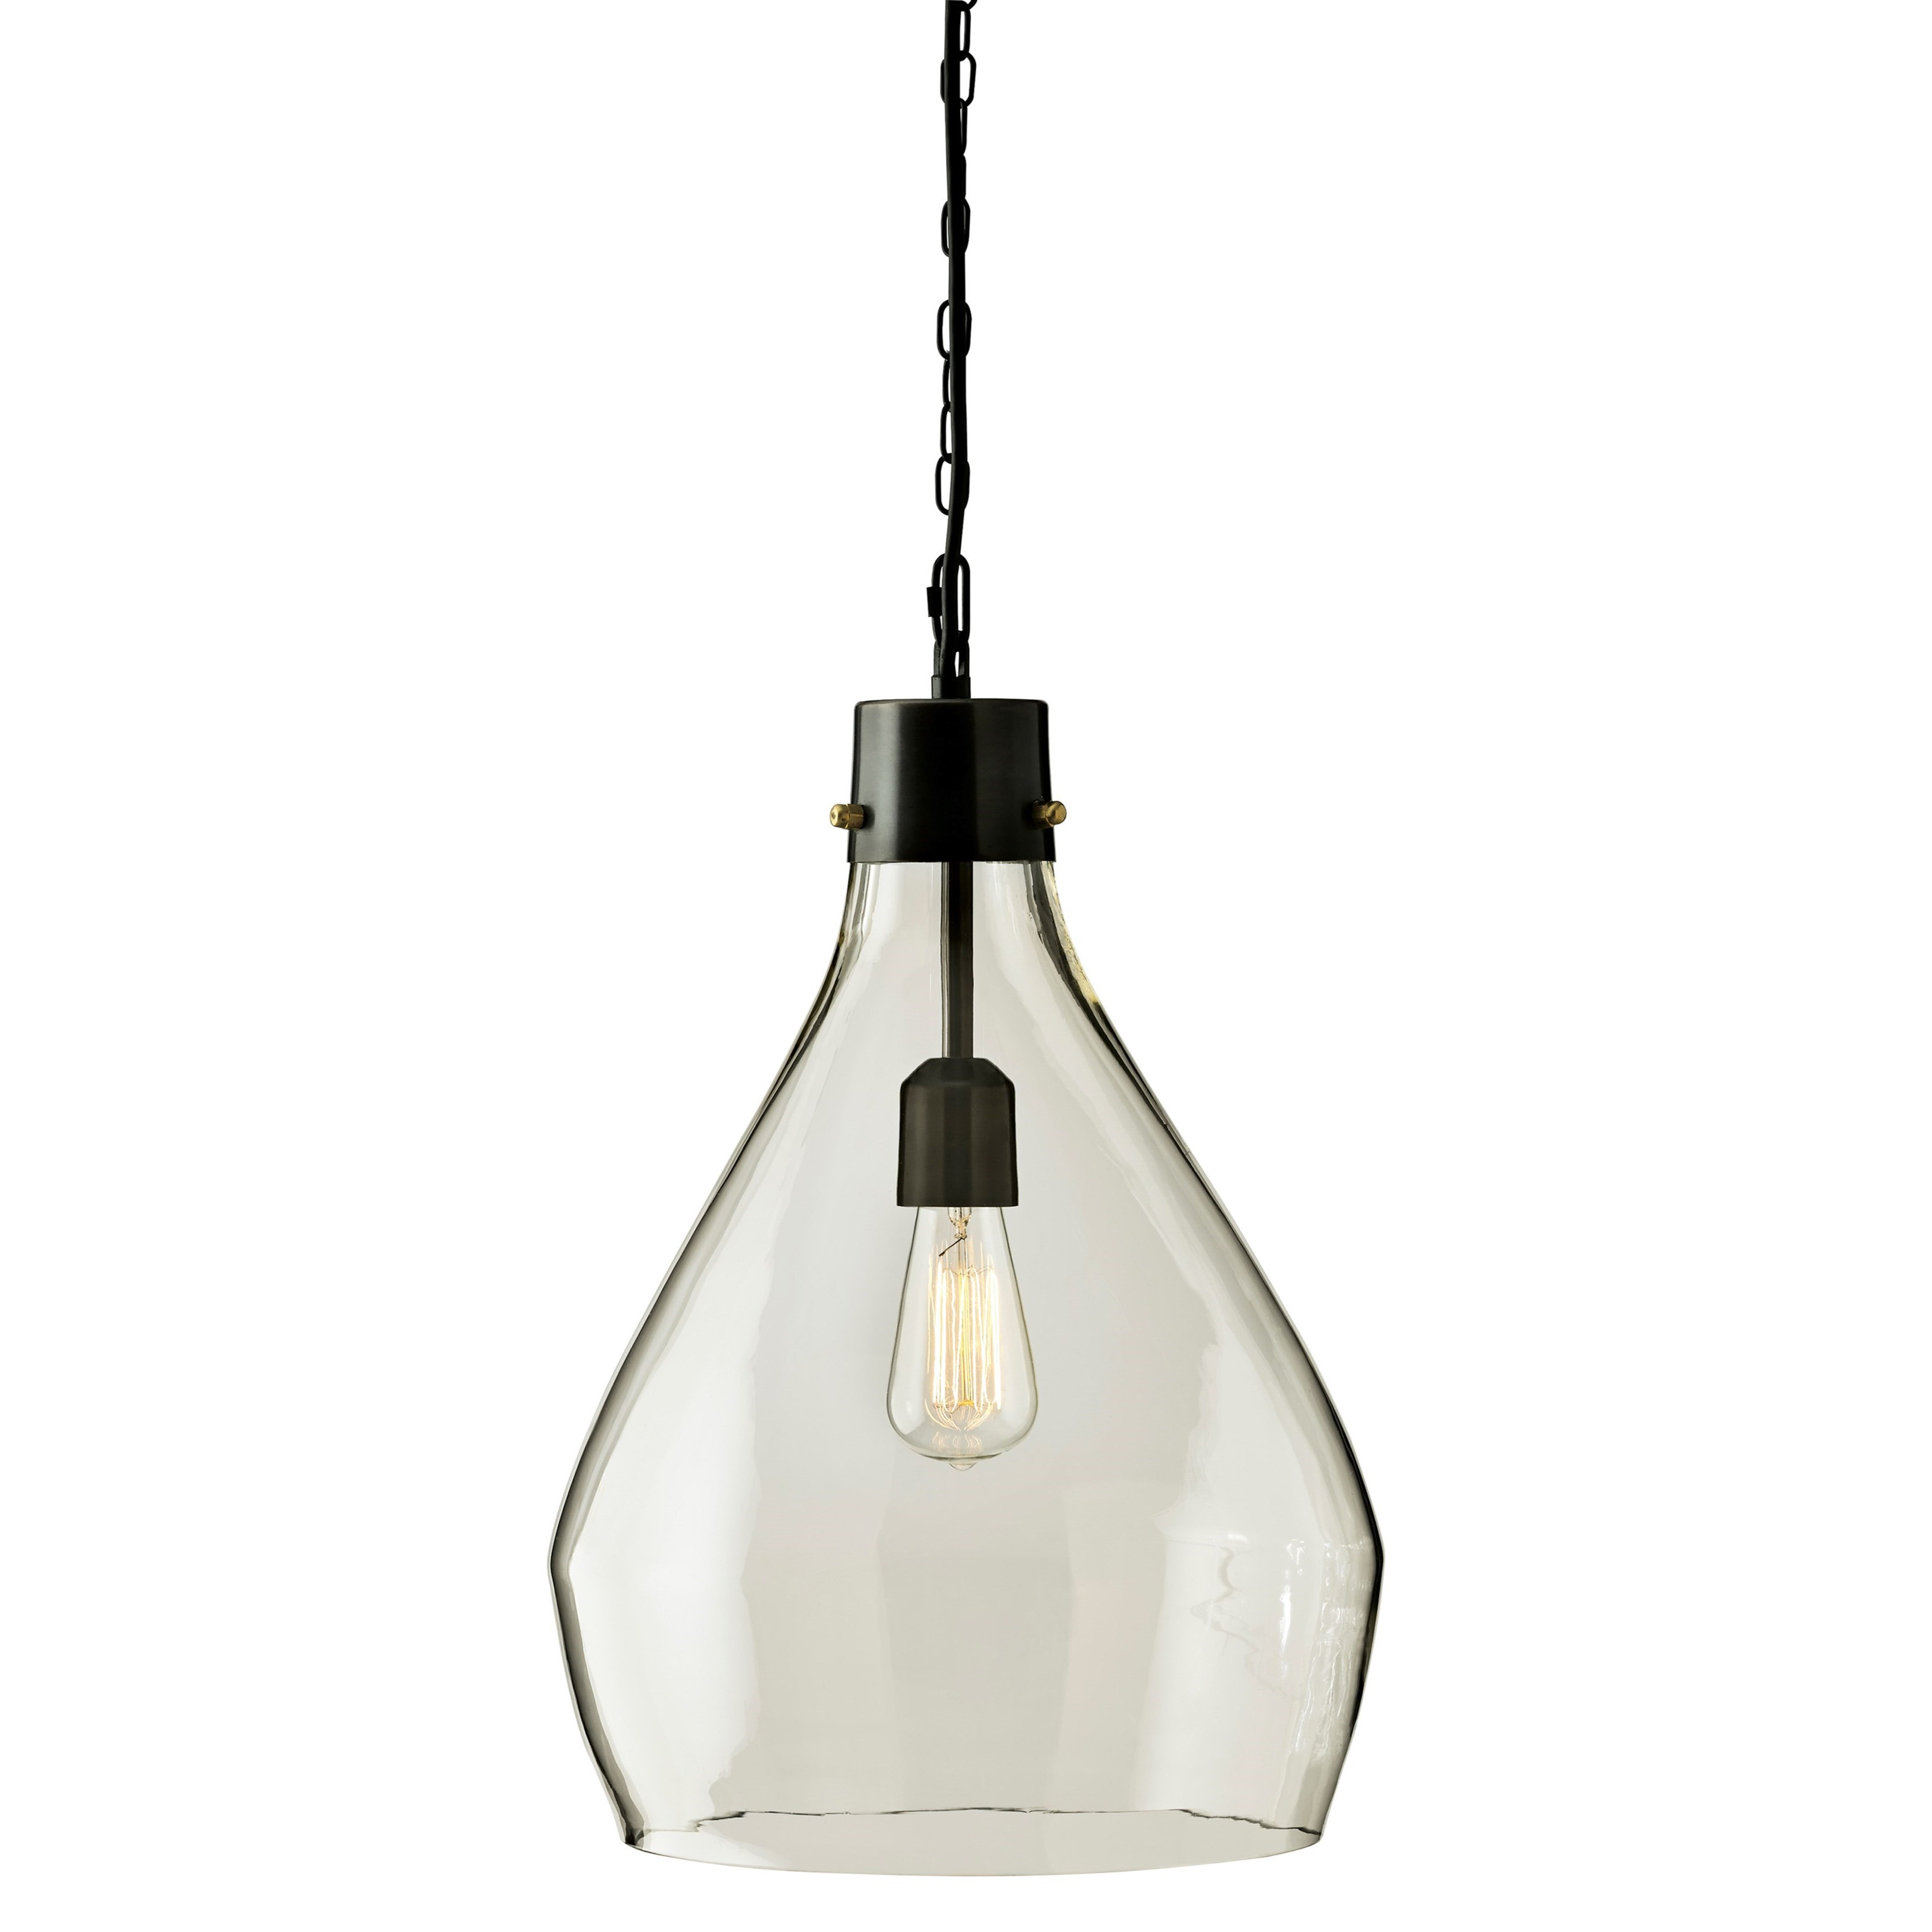 Signature Design by Ashley Pendant Lights Avalbane Clear/Gray Glass Pendant Light - Item Number: L000468